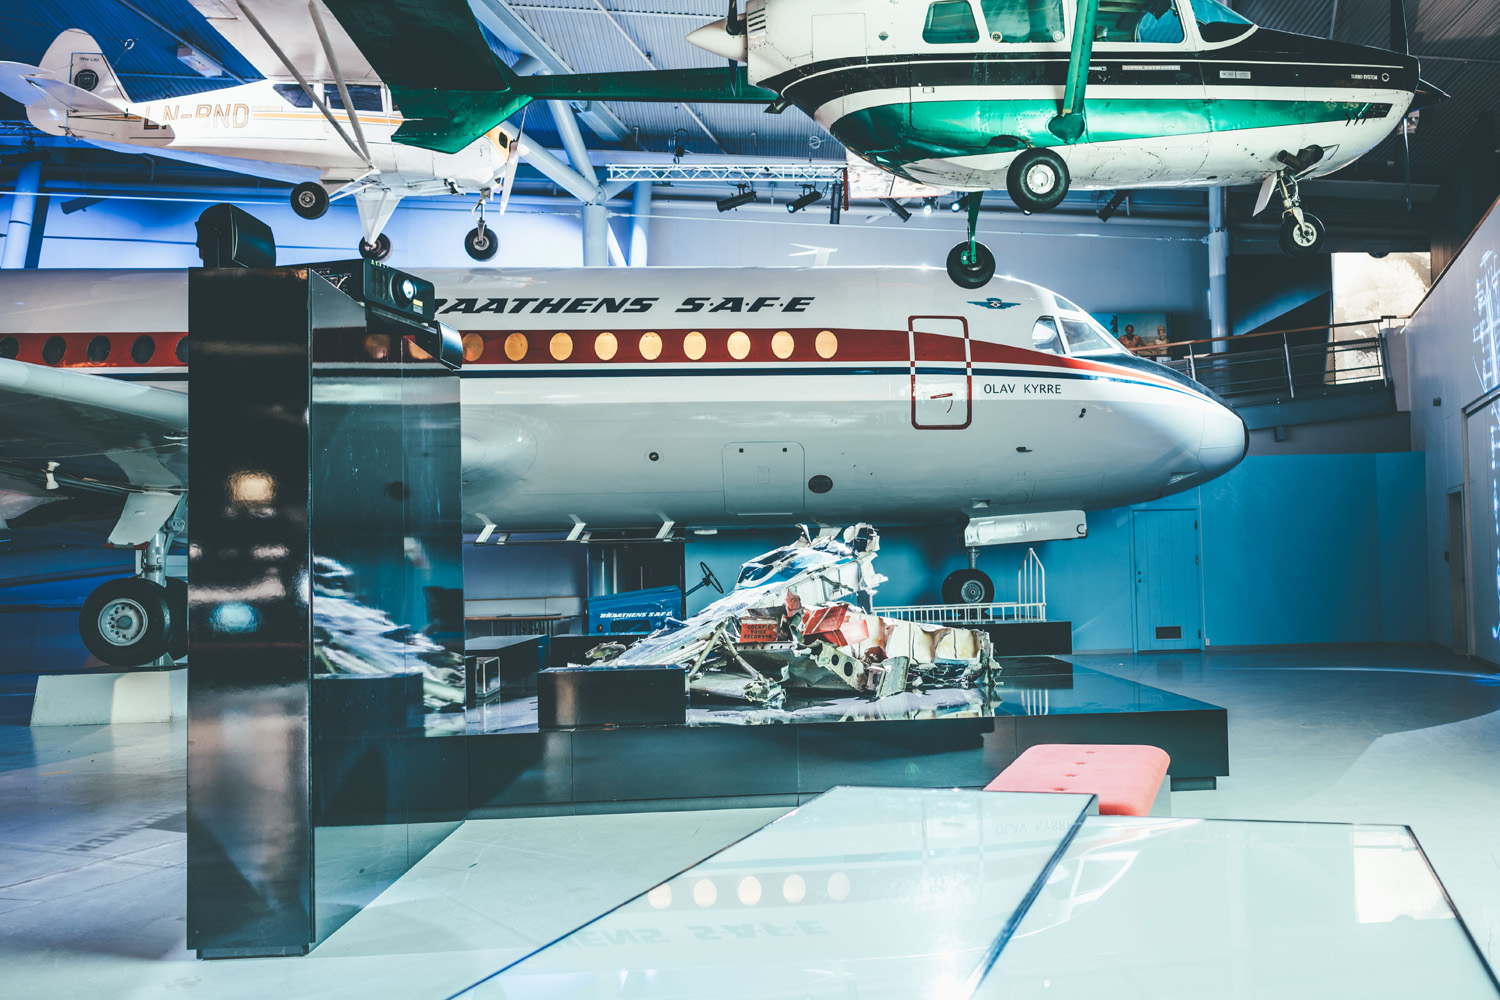 The Civil Aviation exhibit highlights the Luftfartsmuseum's extensive aviation collection, utilising historical footage alongside dramatic lighting and soundscapes which bring the aircraft to life.